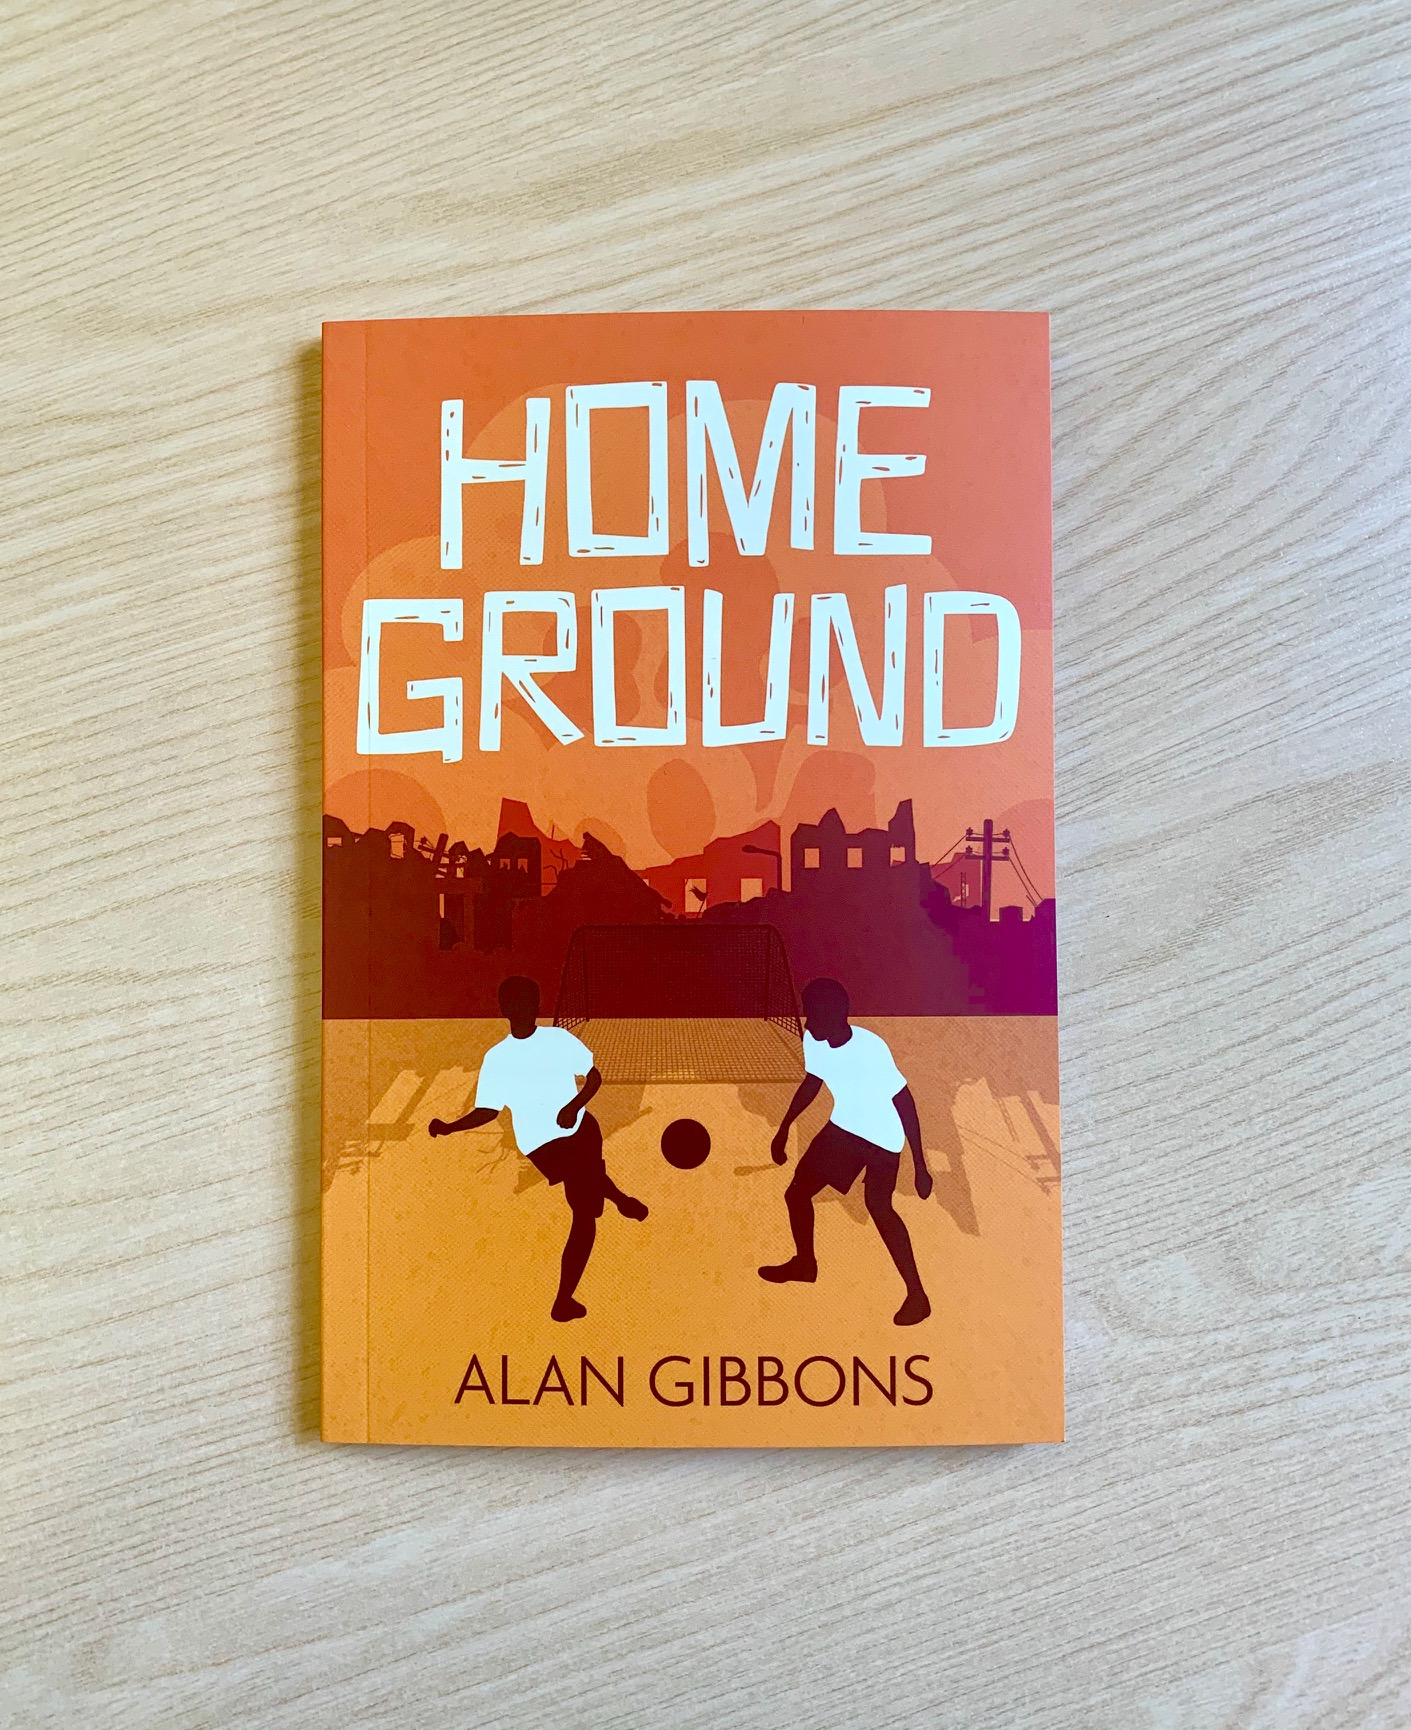 A photograph of the book Home Ground by Alan Gibbons